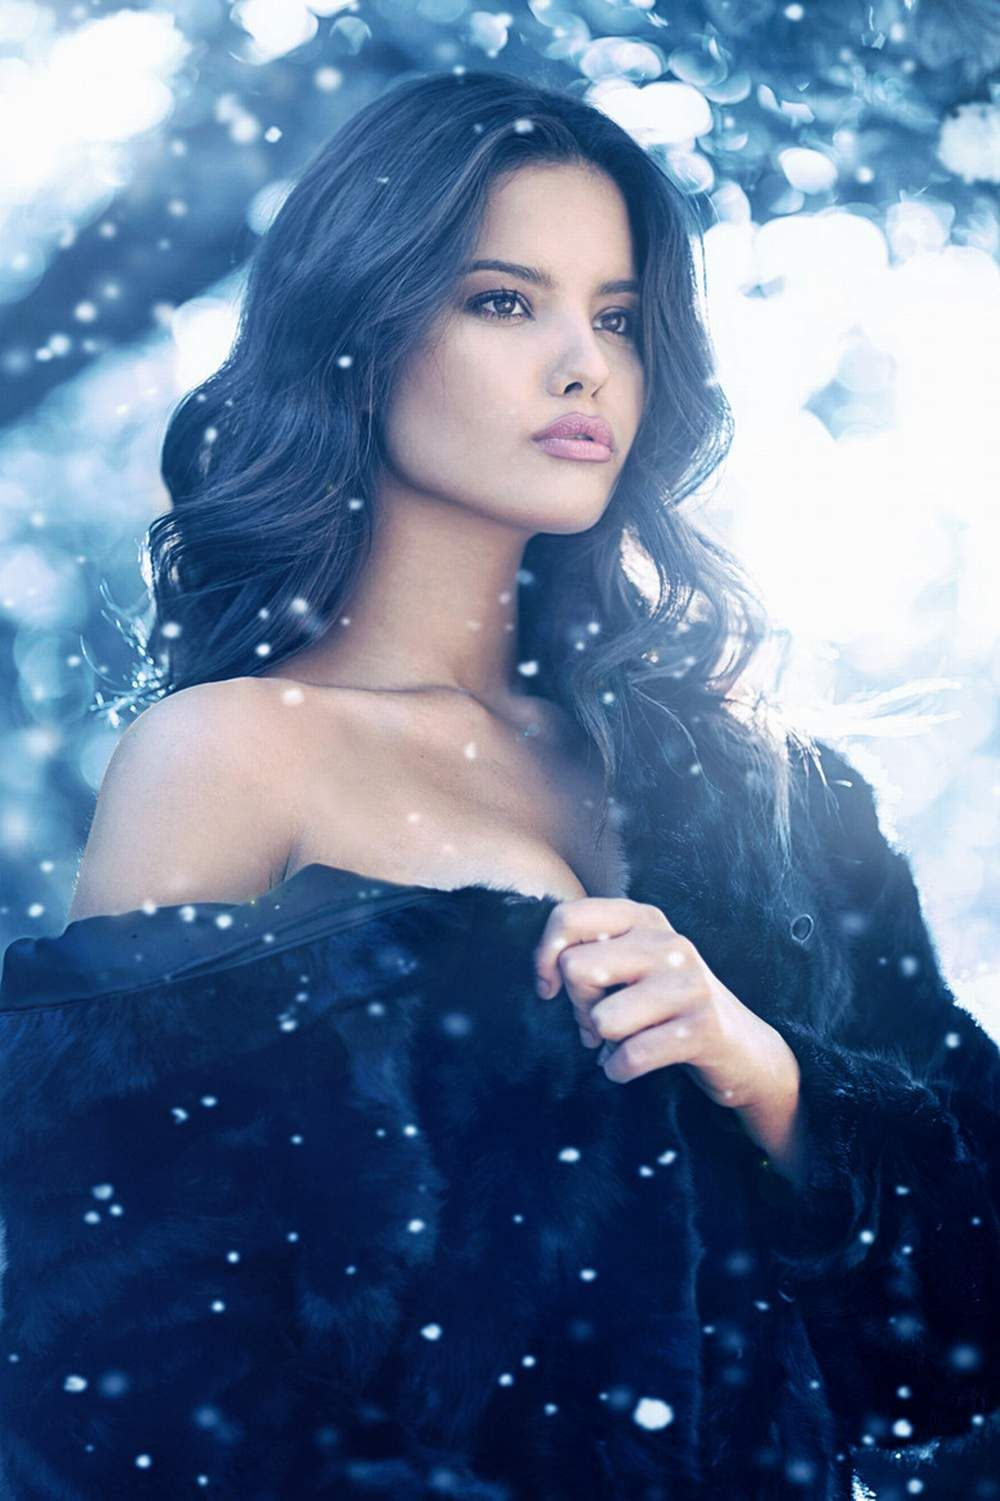 20 photography of winter beauty and fashion beauty and fashion pinterest winter beauty - Photography ideas for girl ...